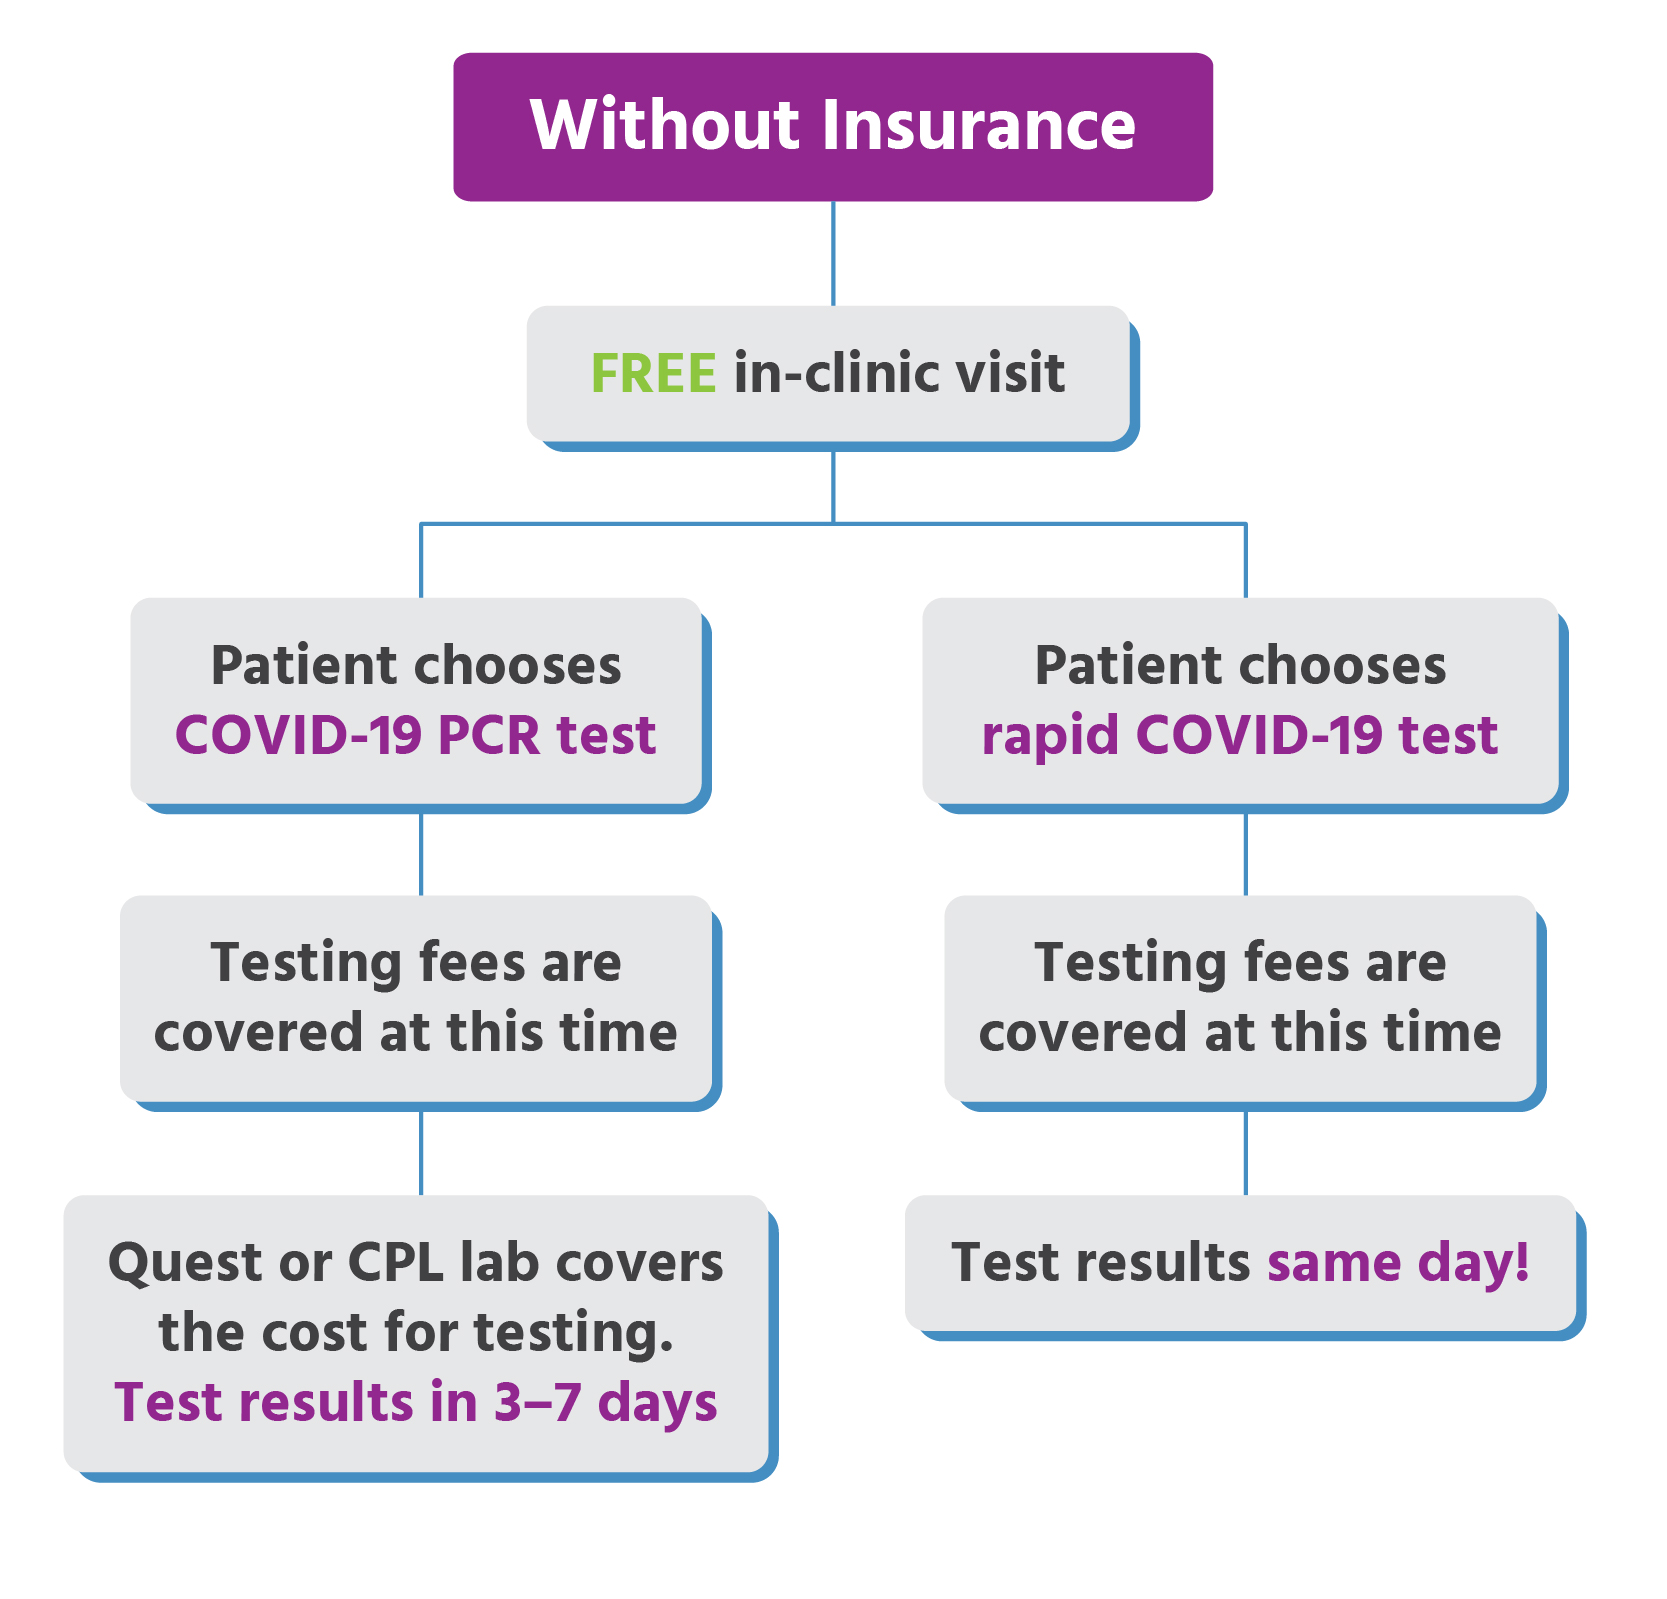 Urgent Care for Kids - Active COVID-19 Testing & Locations